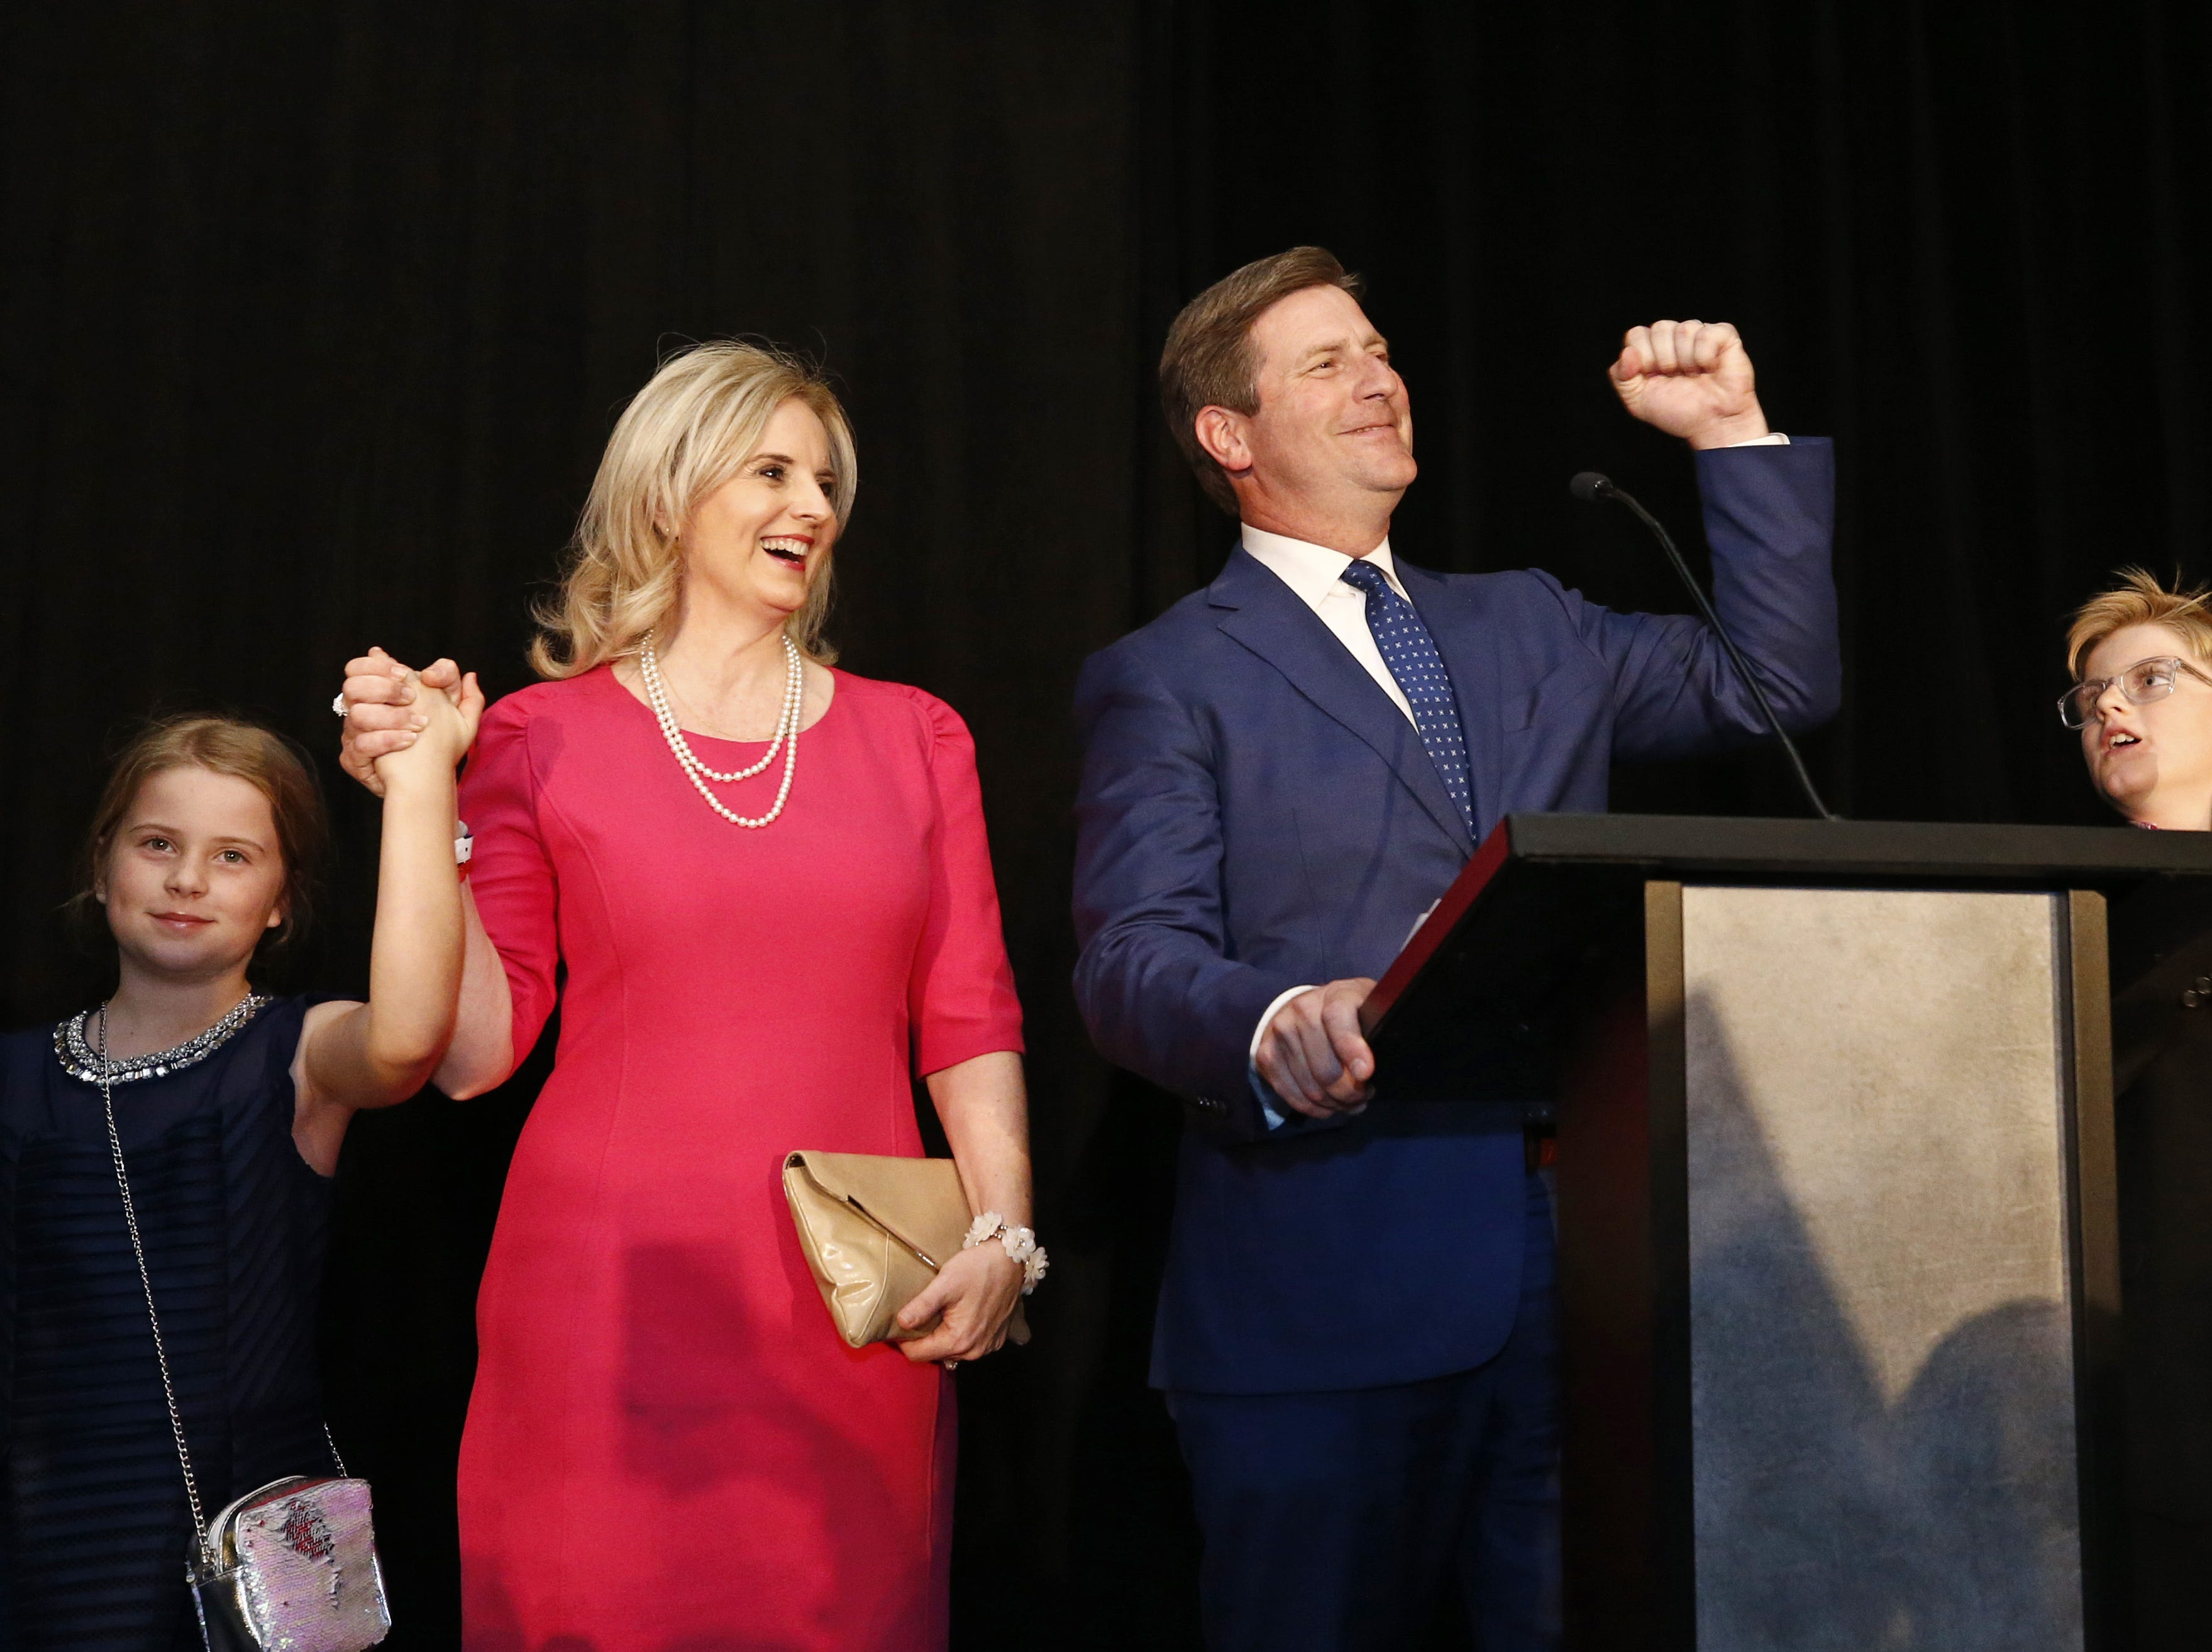 Greg Stanton, Democratic candidate for 9th District District, addresses the crowd at the election night watch party on Nov. 6, 2018 at the Renaissance Hotel in Phoenix.